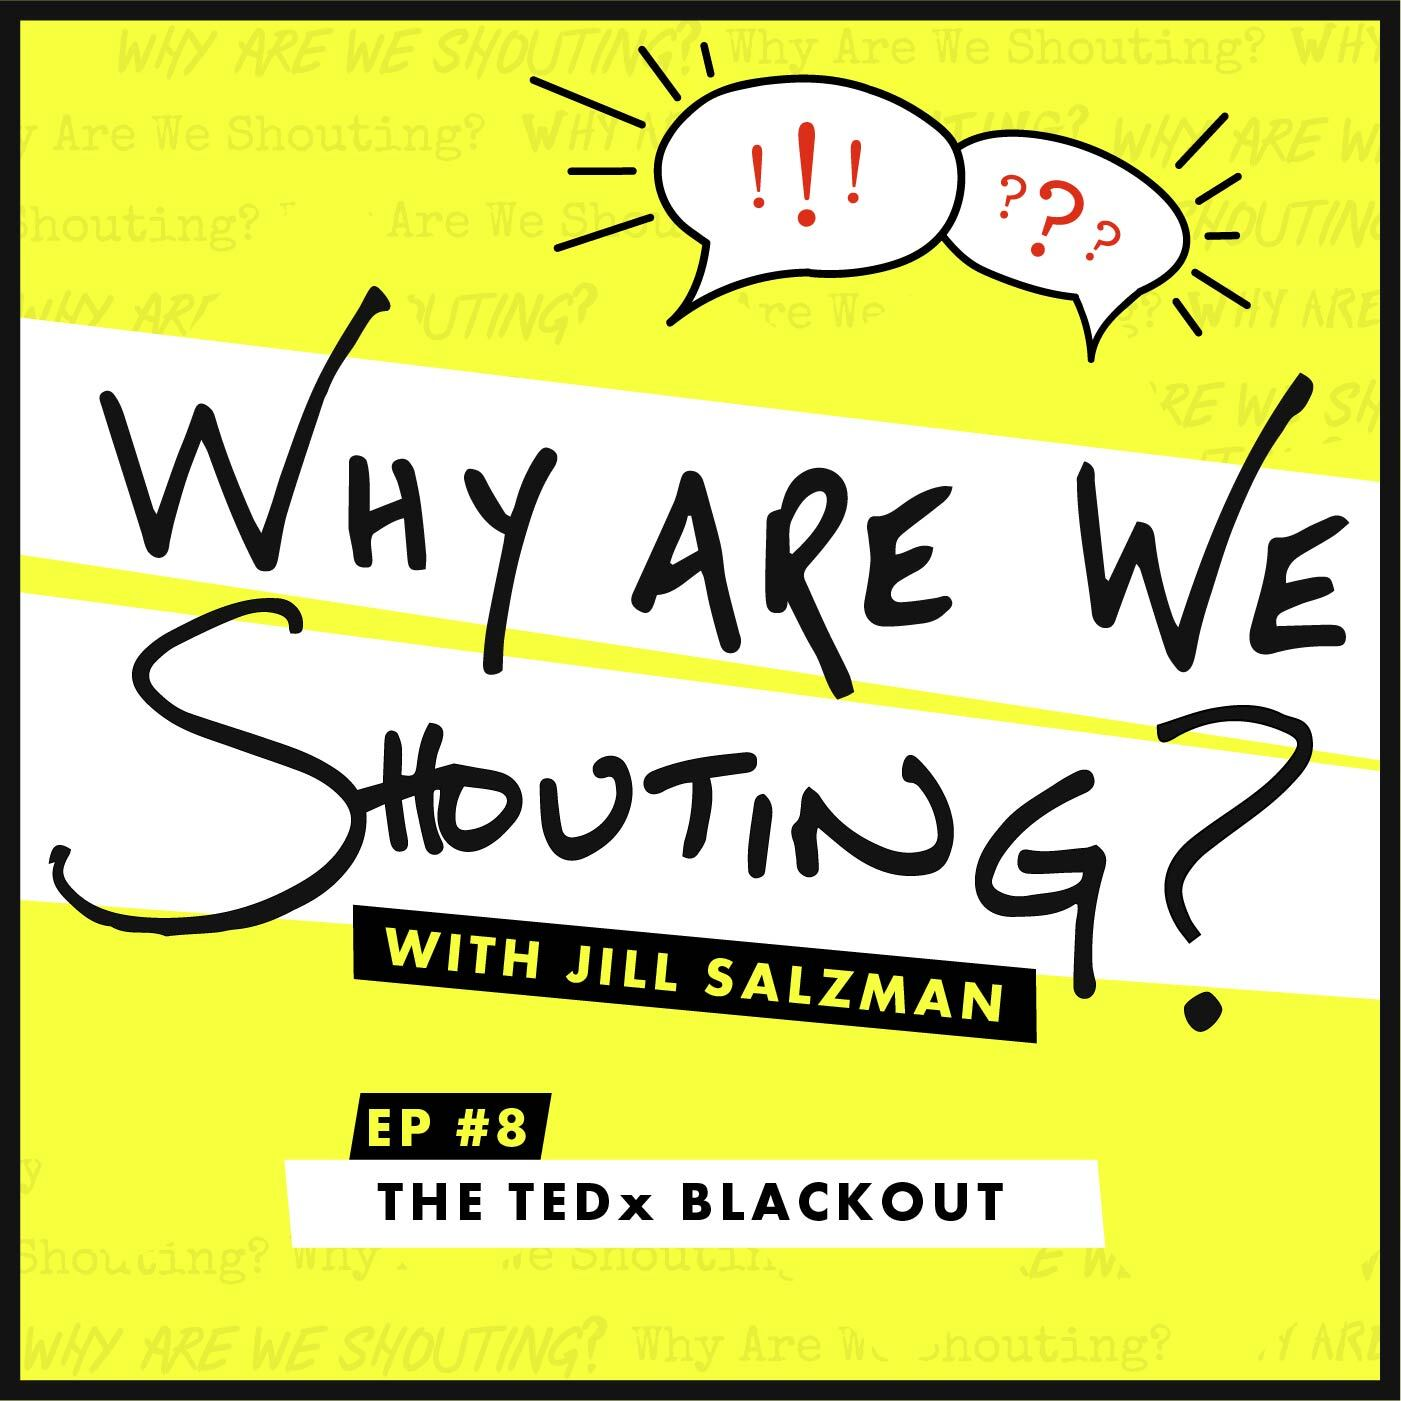 The TEDx Blackout